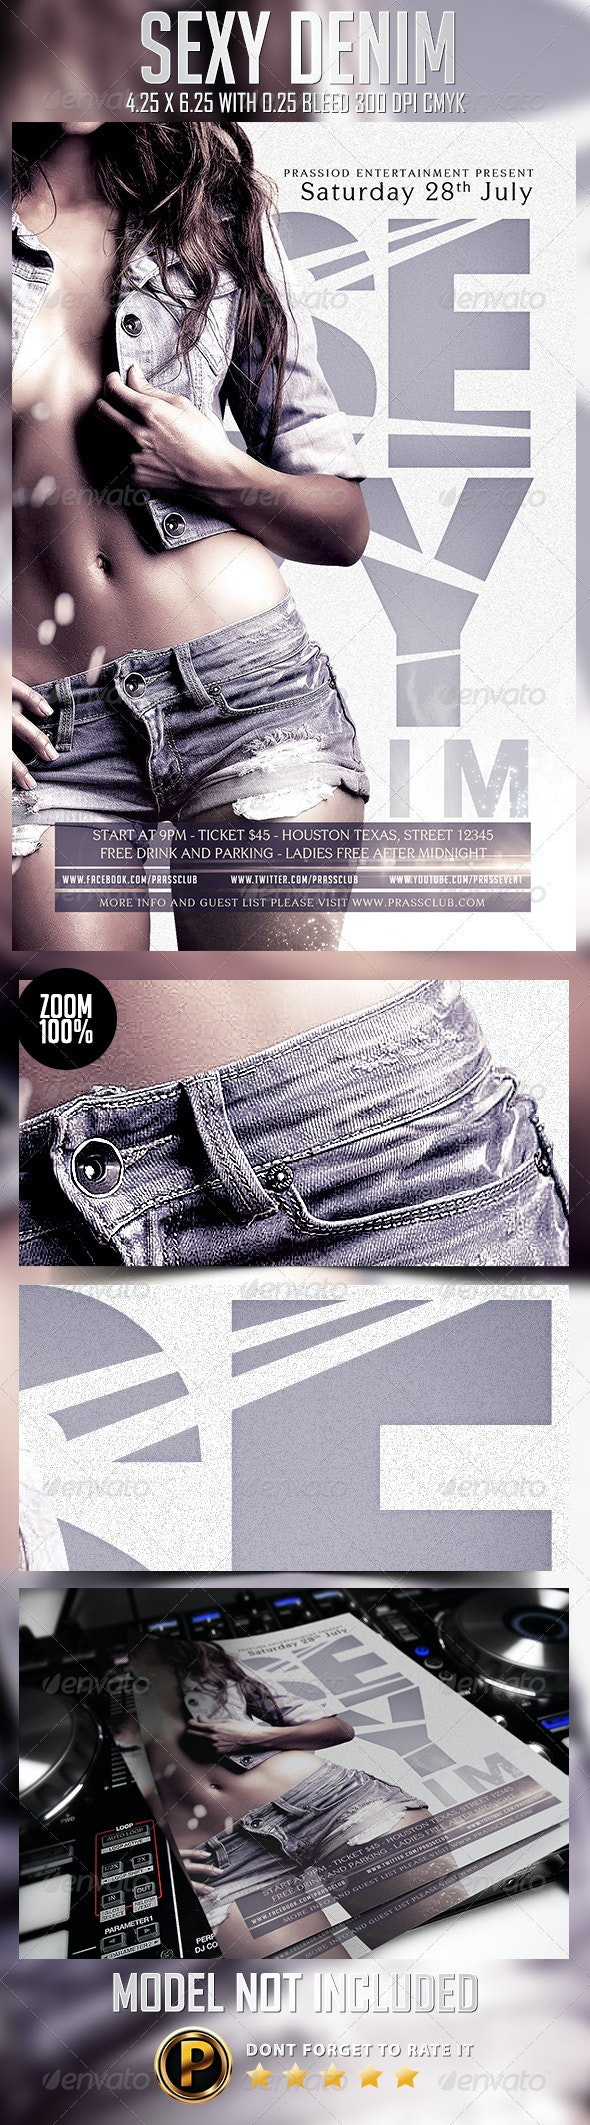 Sexy Denim Flyer Template - Clubs & Parties Events